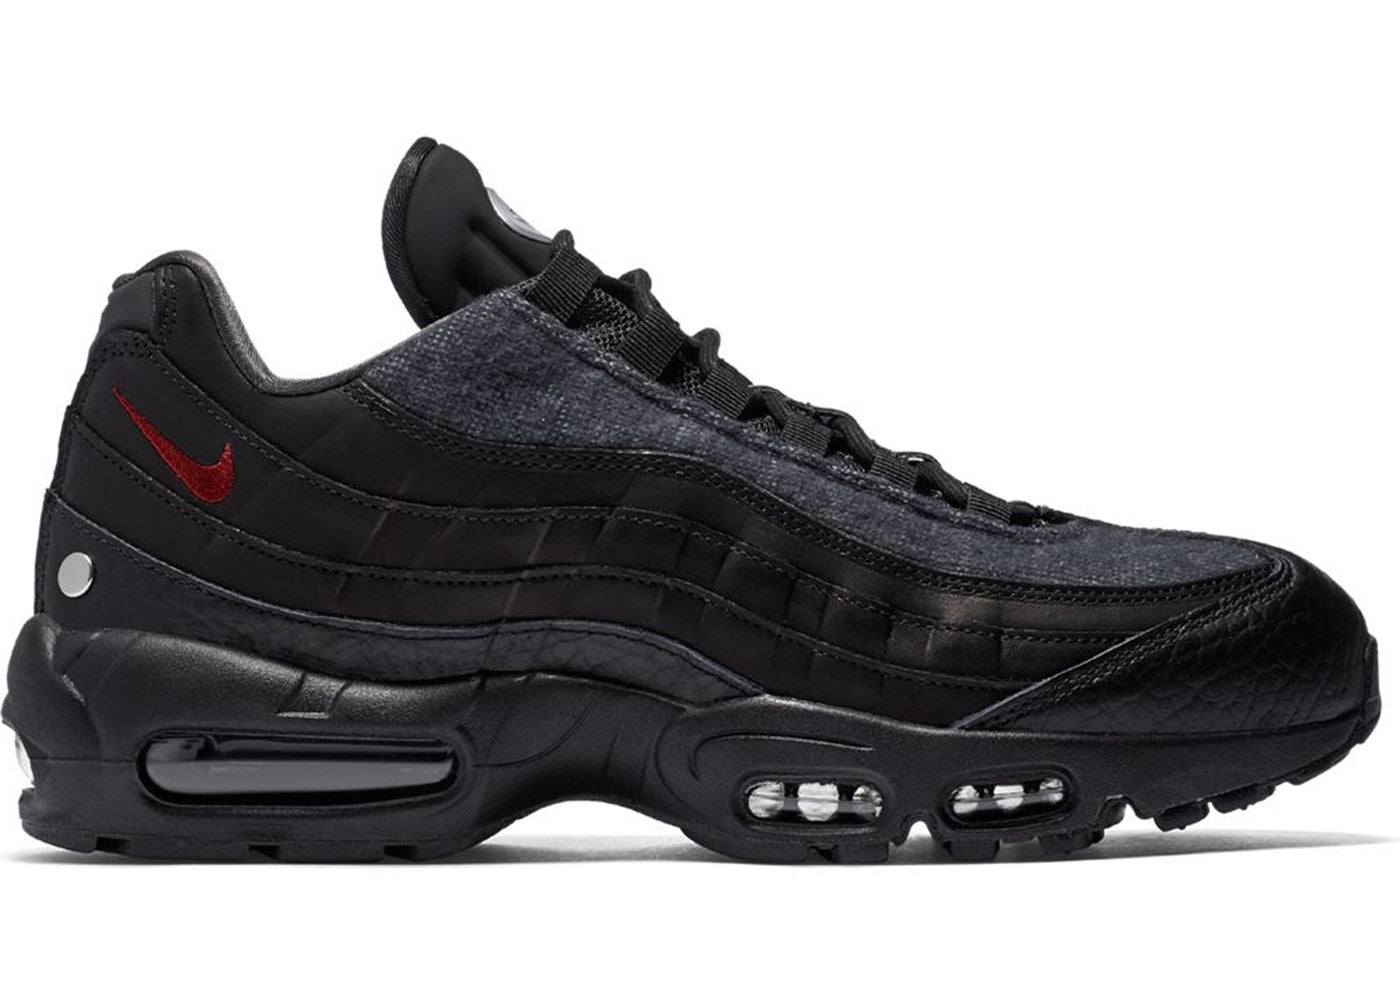 2c06b9c14c8a7b Mens Nike Air Max 95 NRG Jacket Pack Black Team Red Anthracite AT6146-001